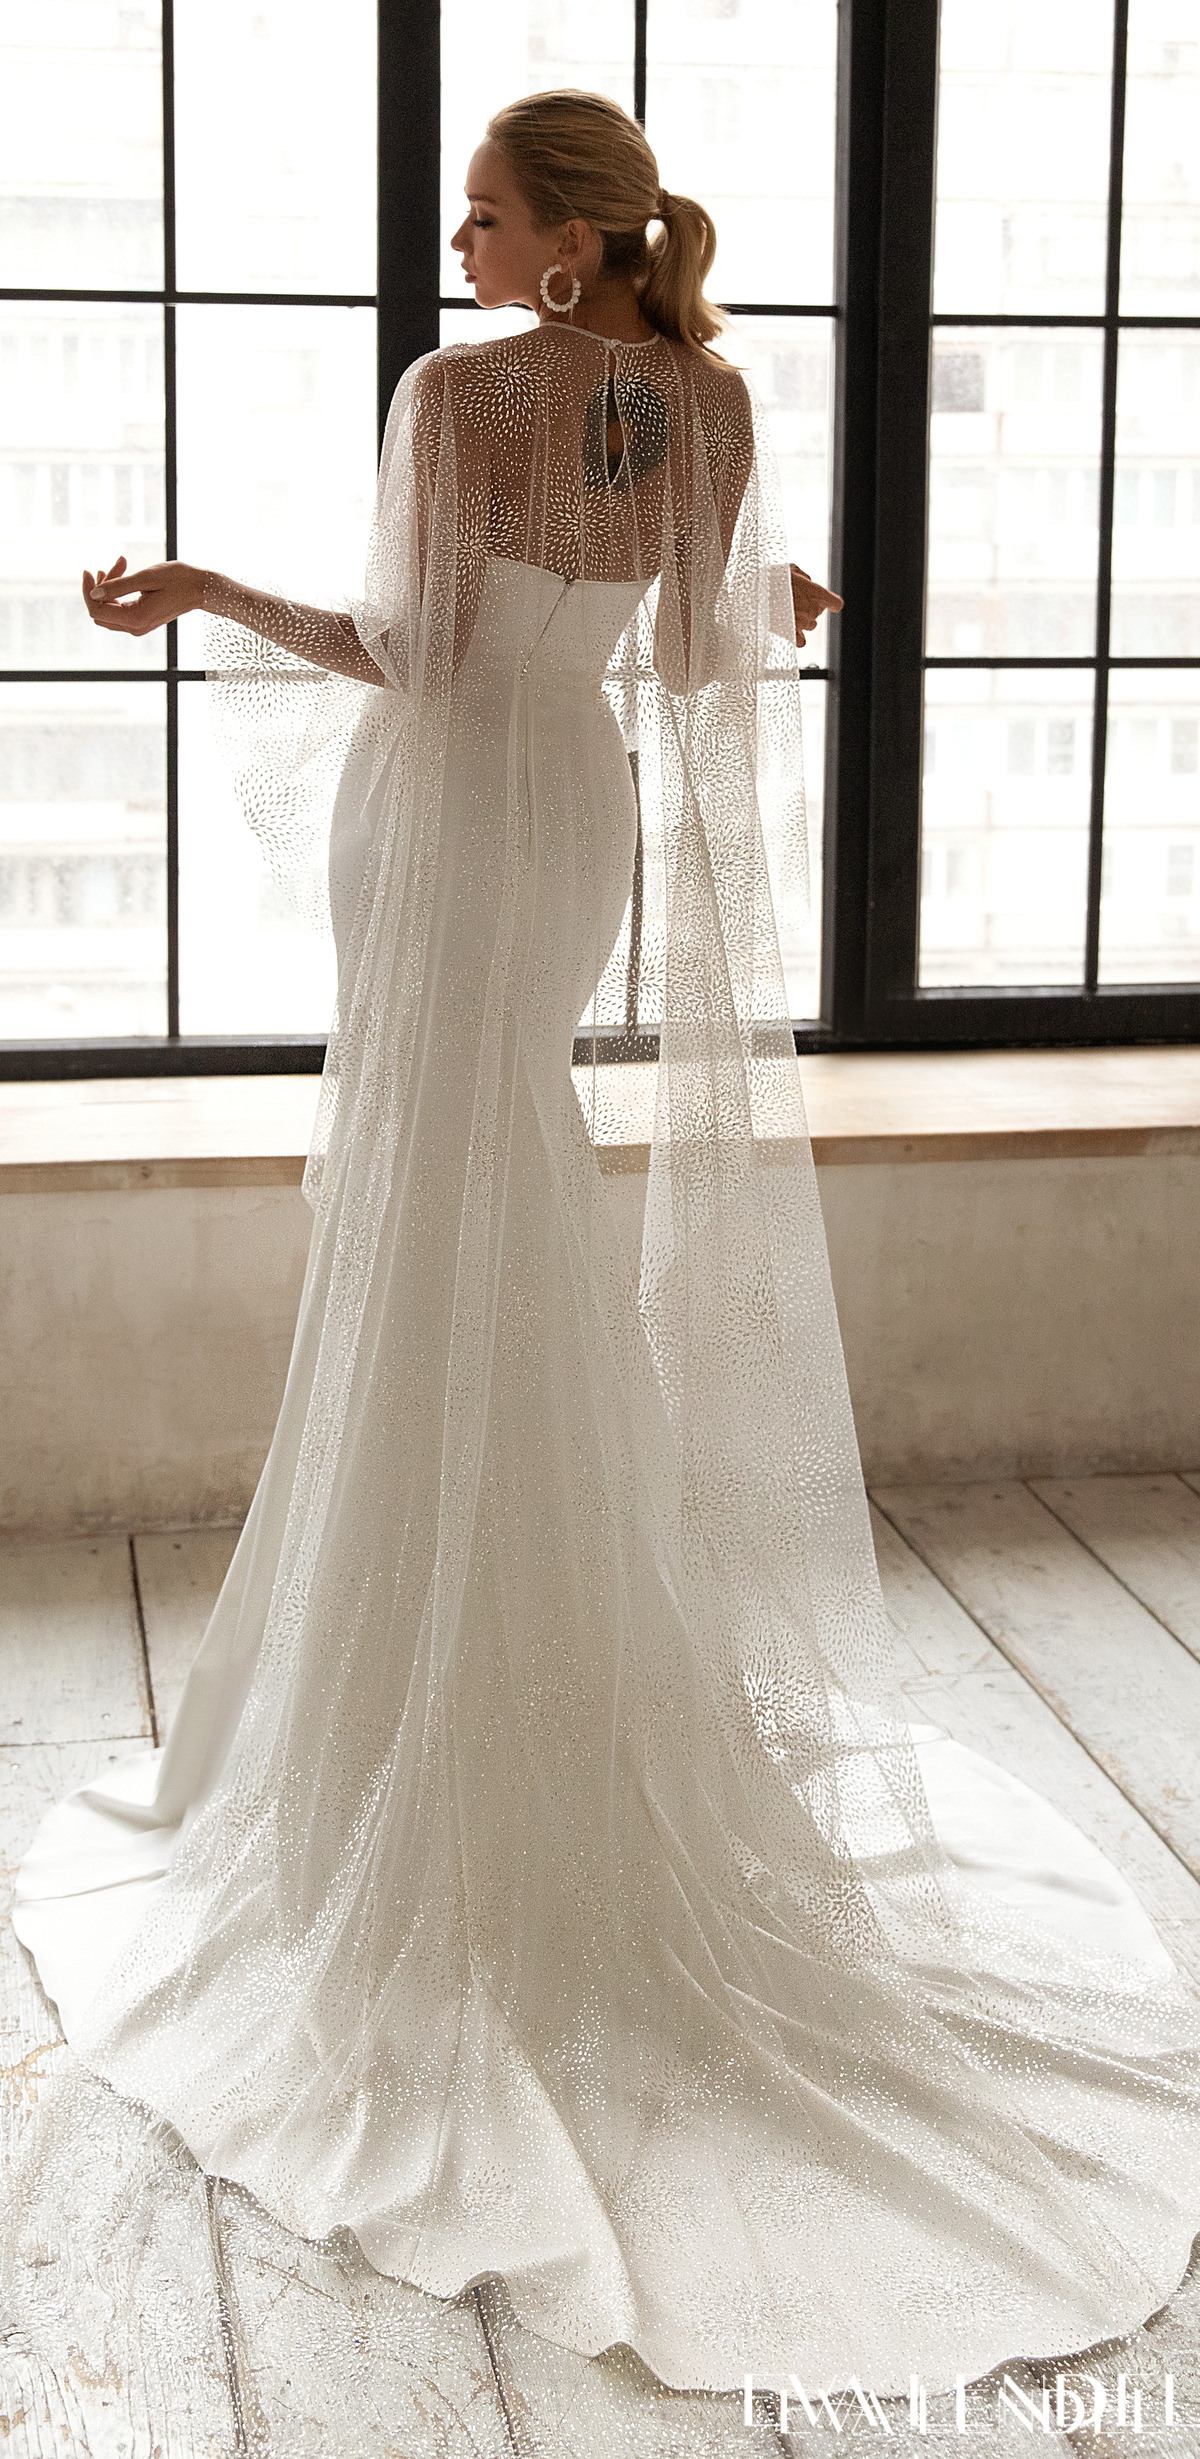 Eva Lendel Wedding Dresses 2021- Less is More Collection -Eva Lendel Wedding Dresses 2021- Less is More Collection -Cory